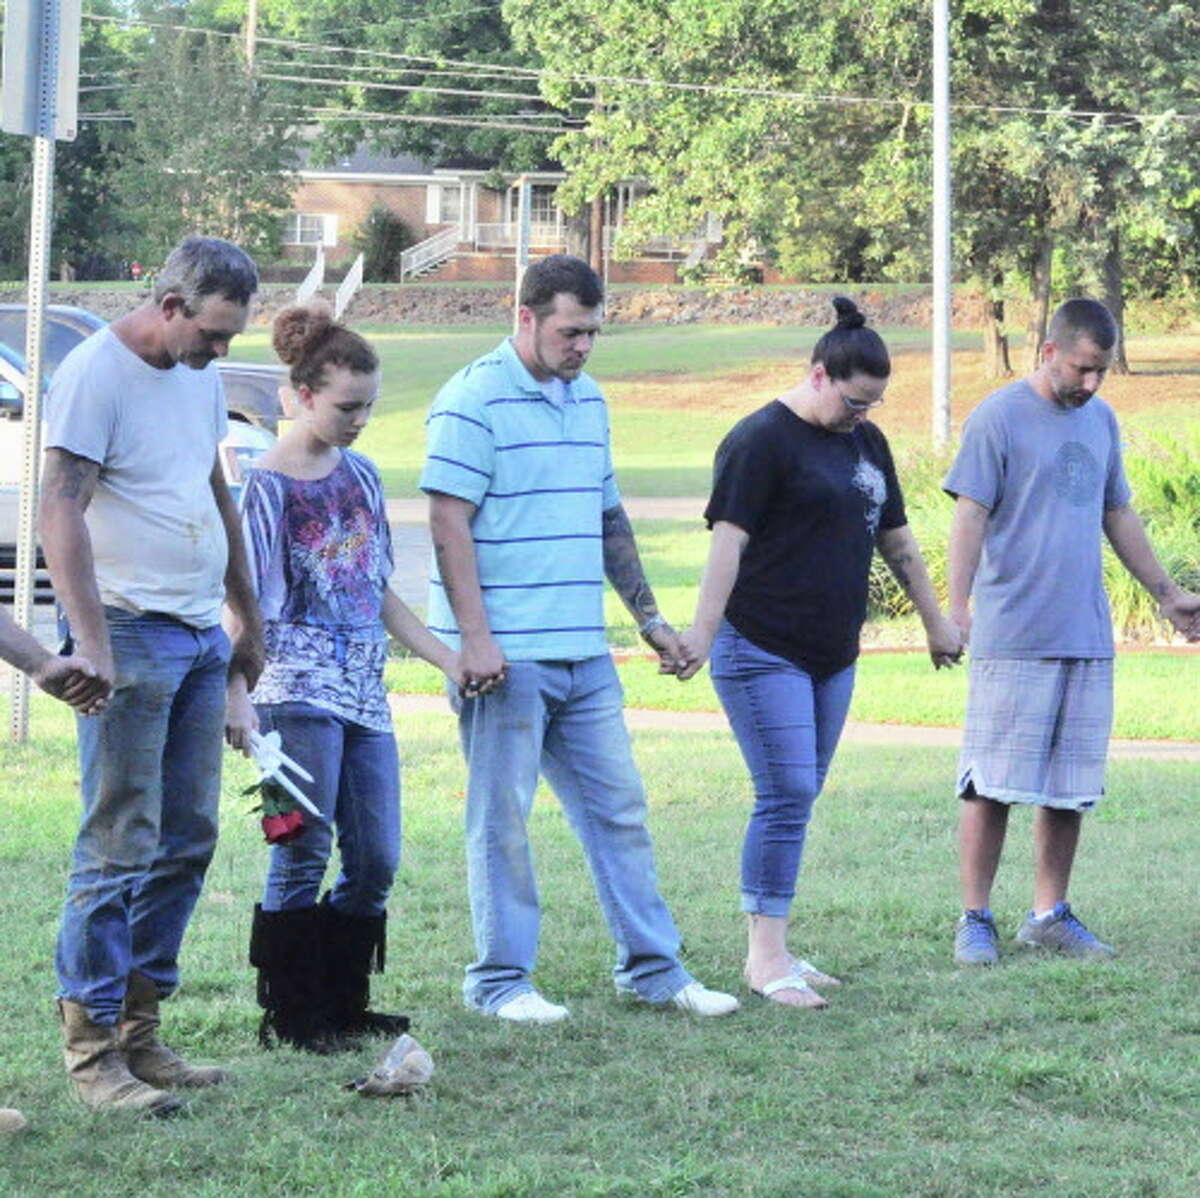 Brandy Mosley's first cousin, Danielle Melson, second from the left, shared sweet stories of her childhood with Brandy during a prayer vigil on Tuesday evening in Reagan Park in Palestine, Tx.